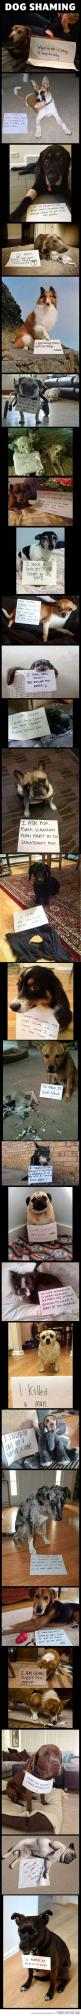 The ultimate dog shaming compilation…I seriously giggled at a couple of these!: Shaming Compilation, Dog Shame, Dog Shaming, Funny Dogs, Funny Stuff, Puppy, So Funny